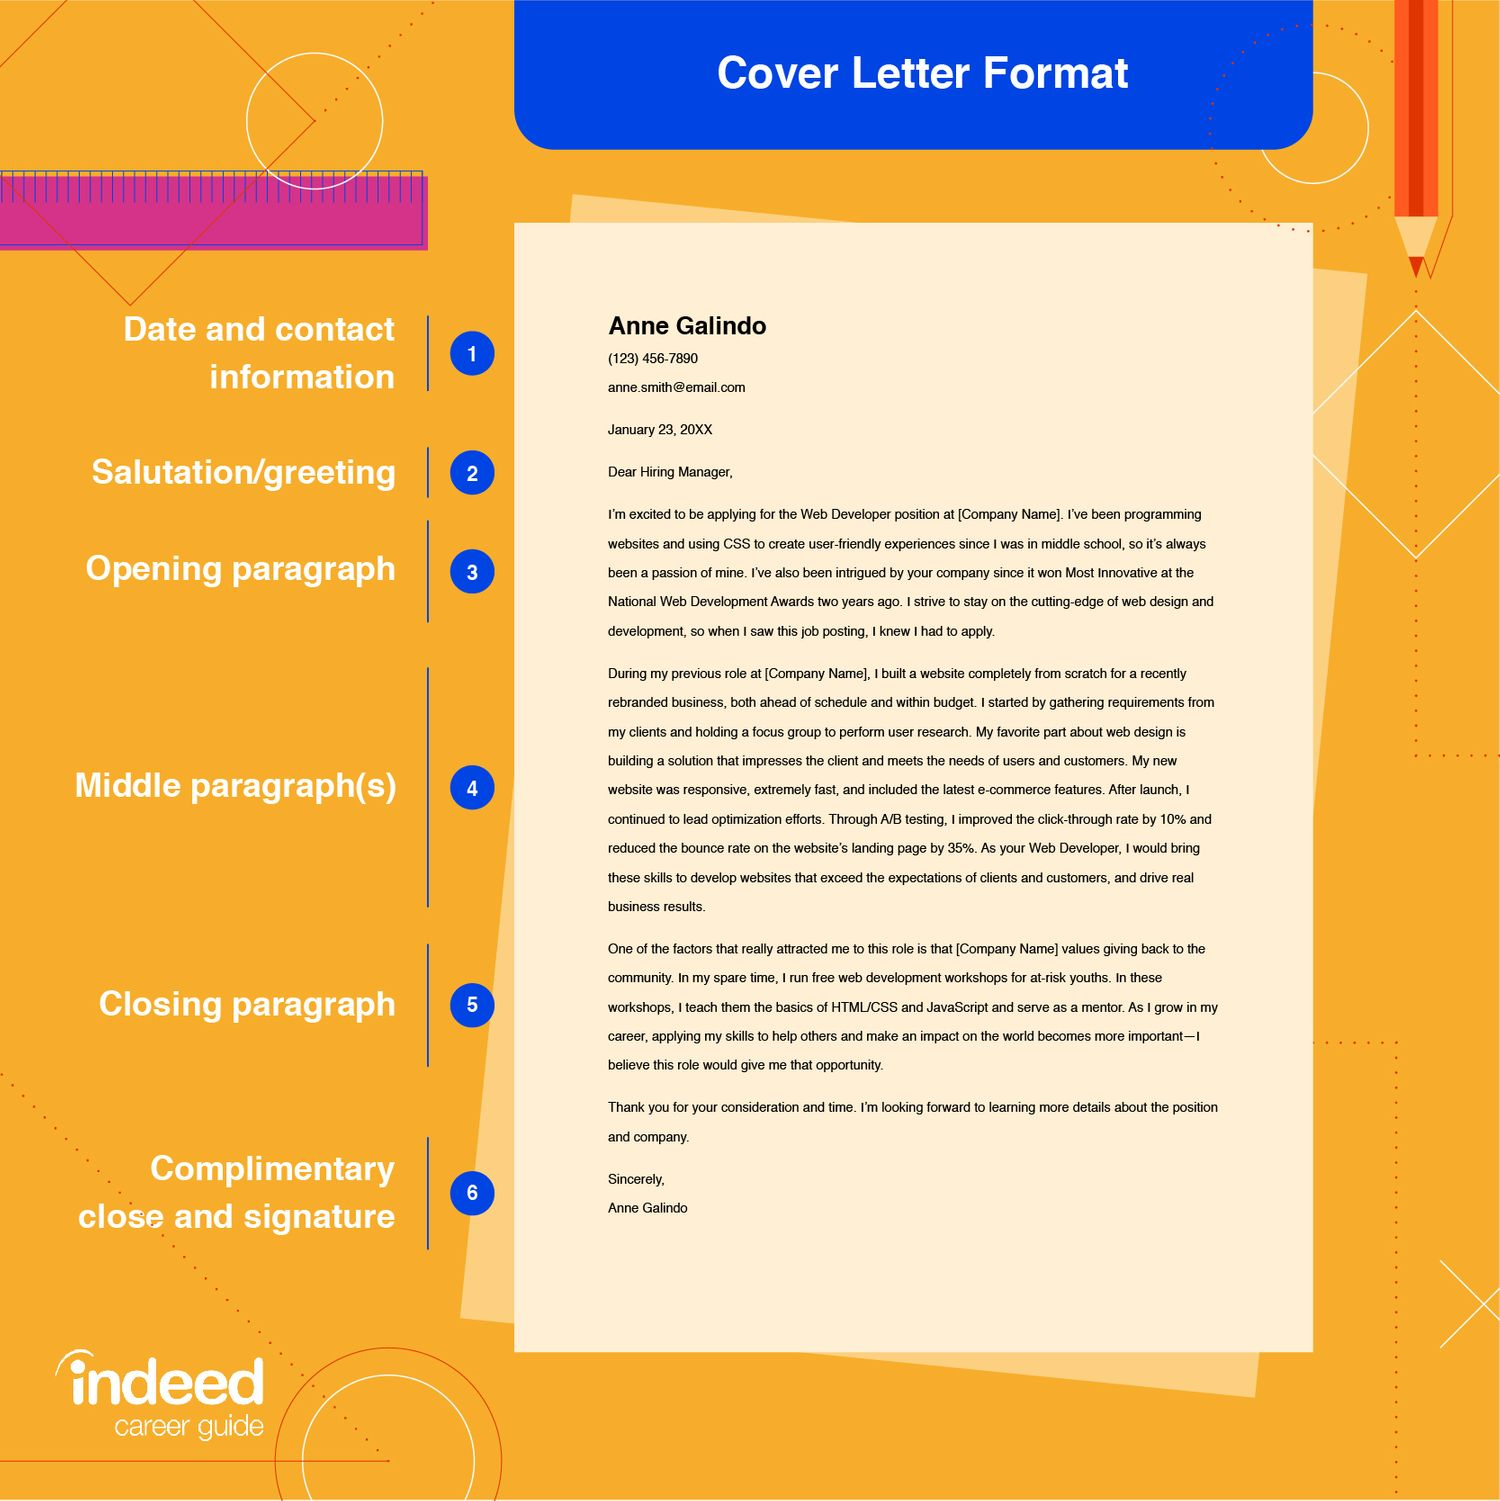 resume vs cover letter the difference indeed summary resized recreation manager nicu best Resume Resume Summary Vs Cover Letter